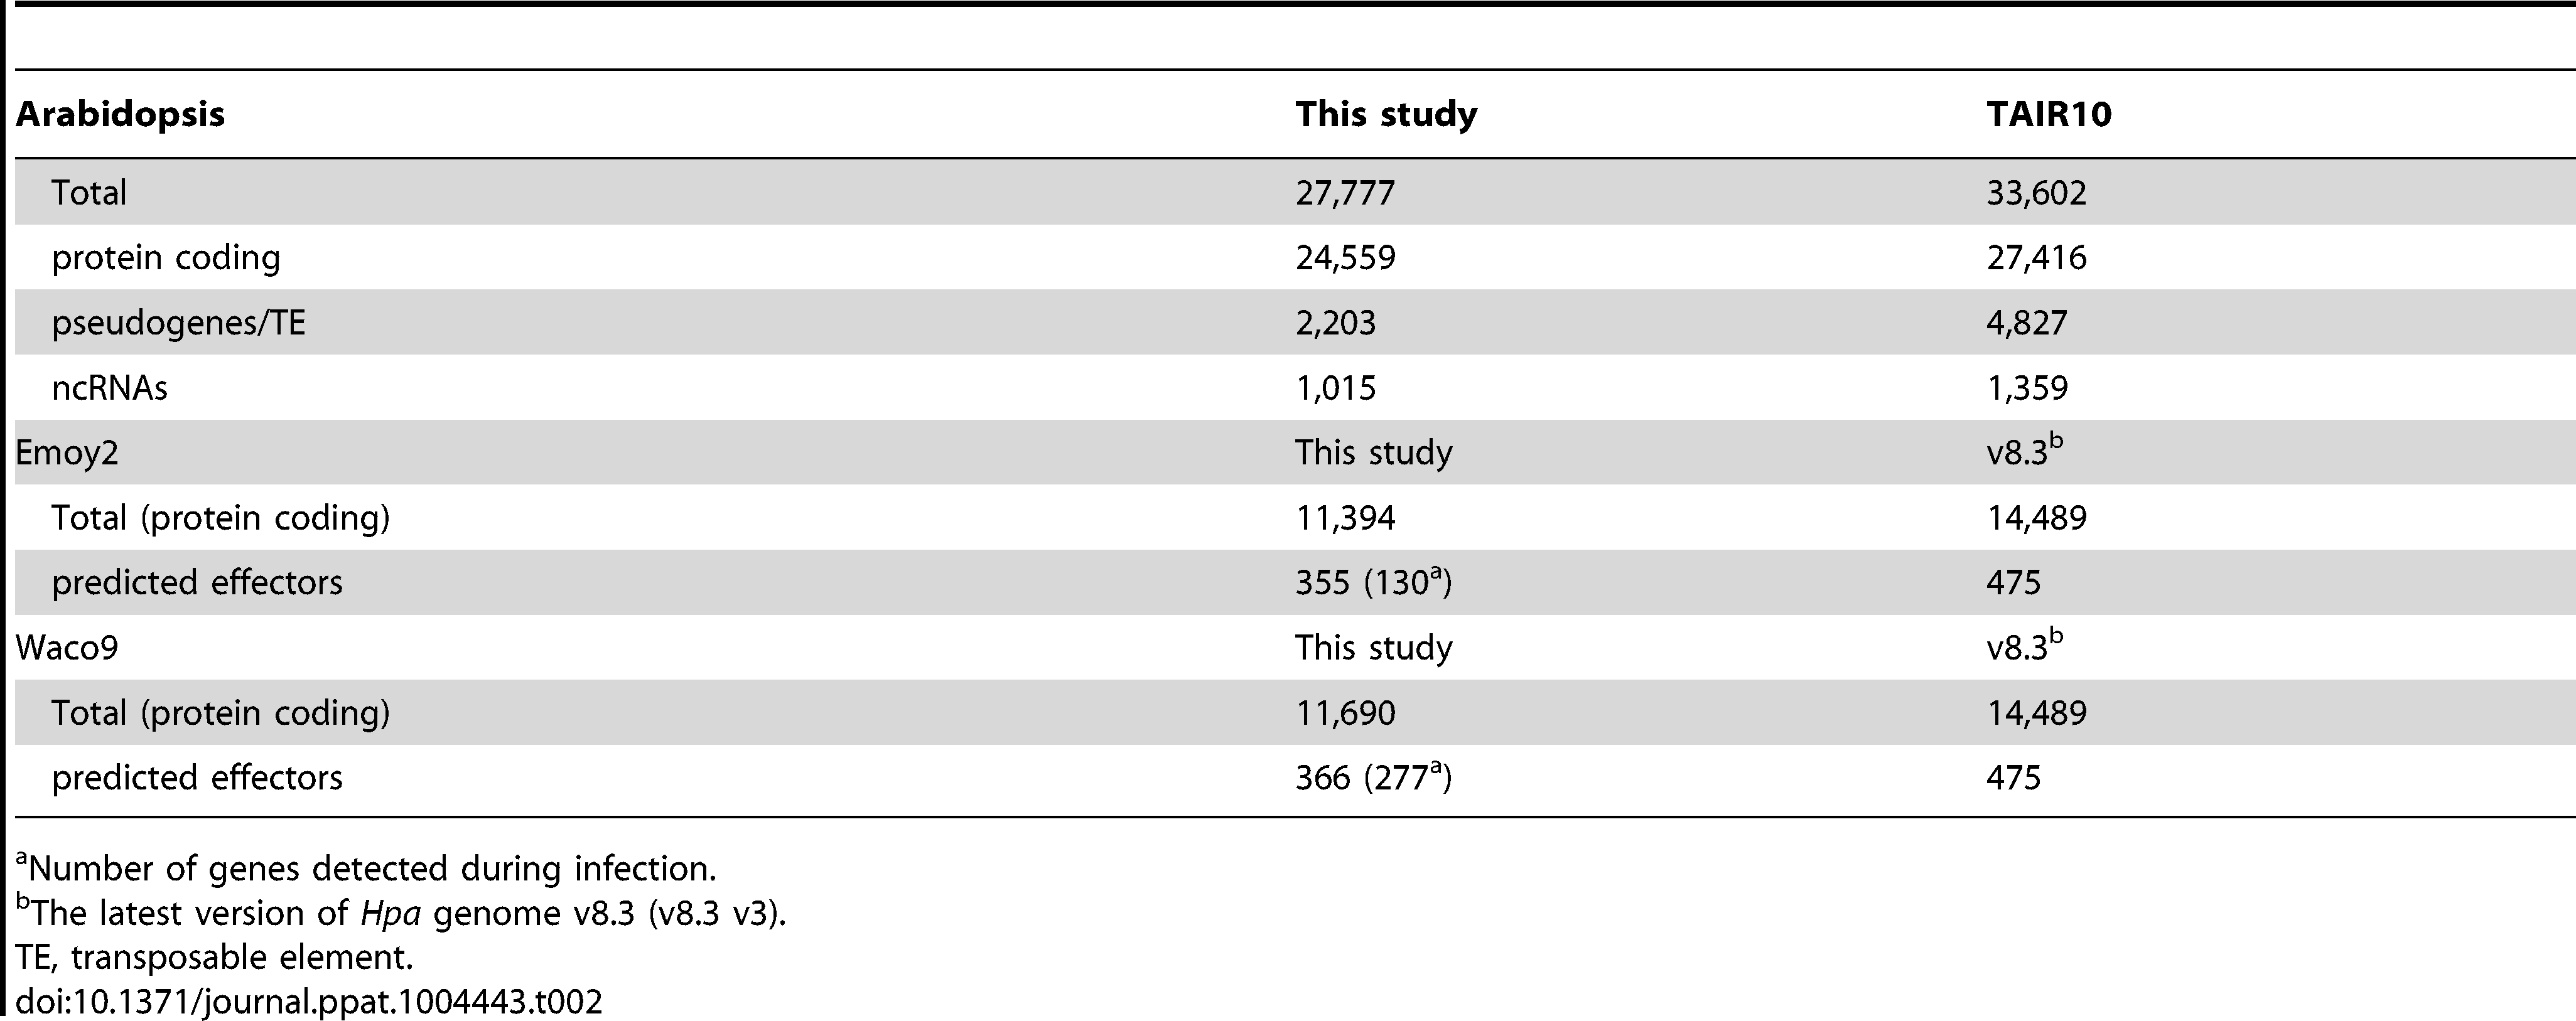 The number of genes detected in this study.